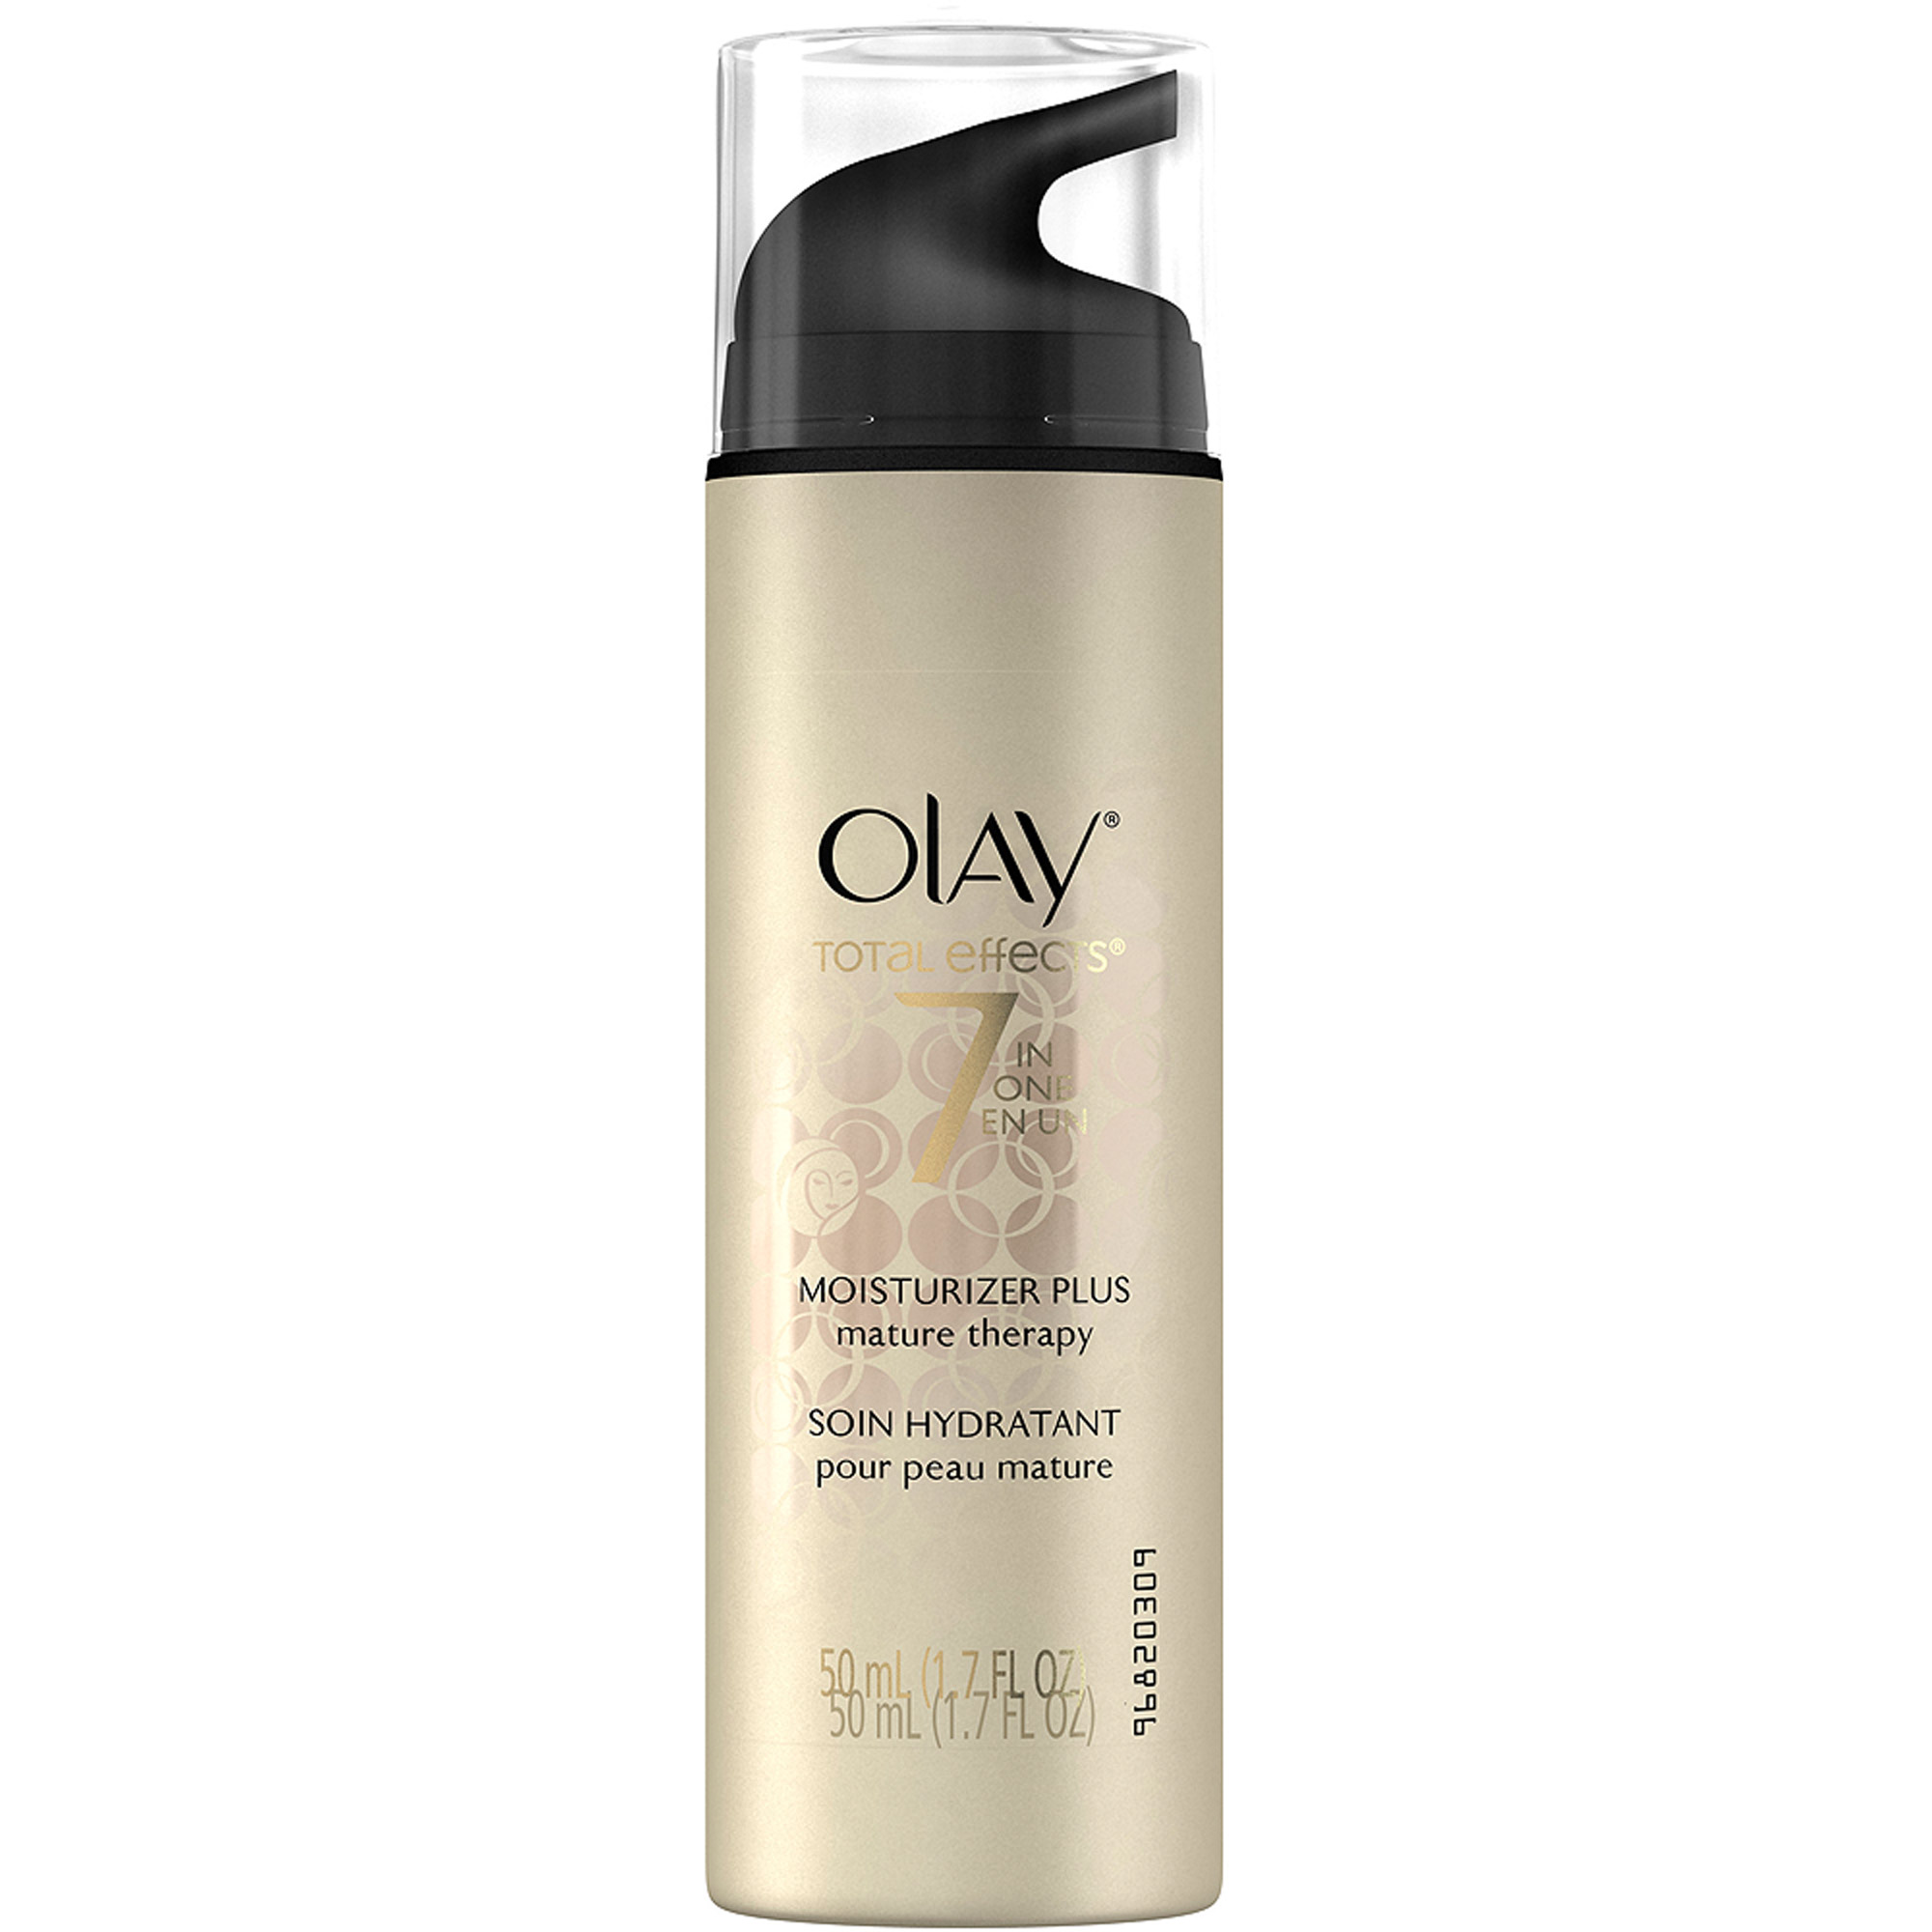 Olay Total Effects Facial Moisturizer Plus Mature Therapy, 1.7 fl oz